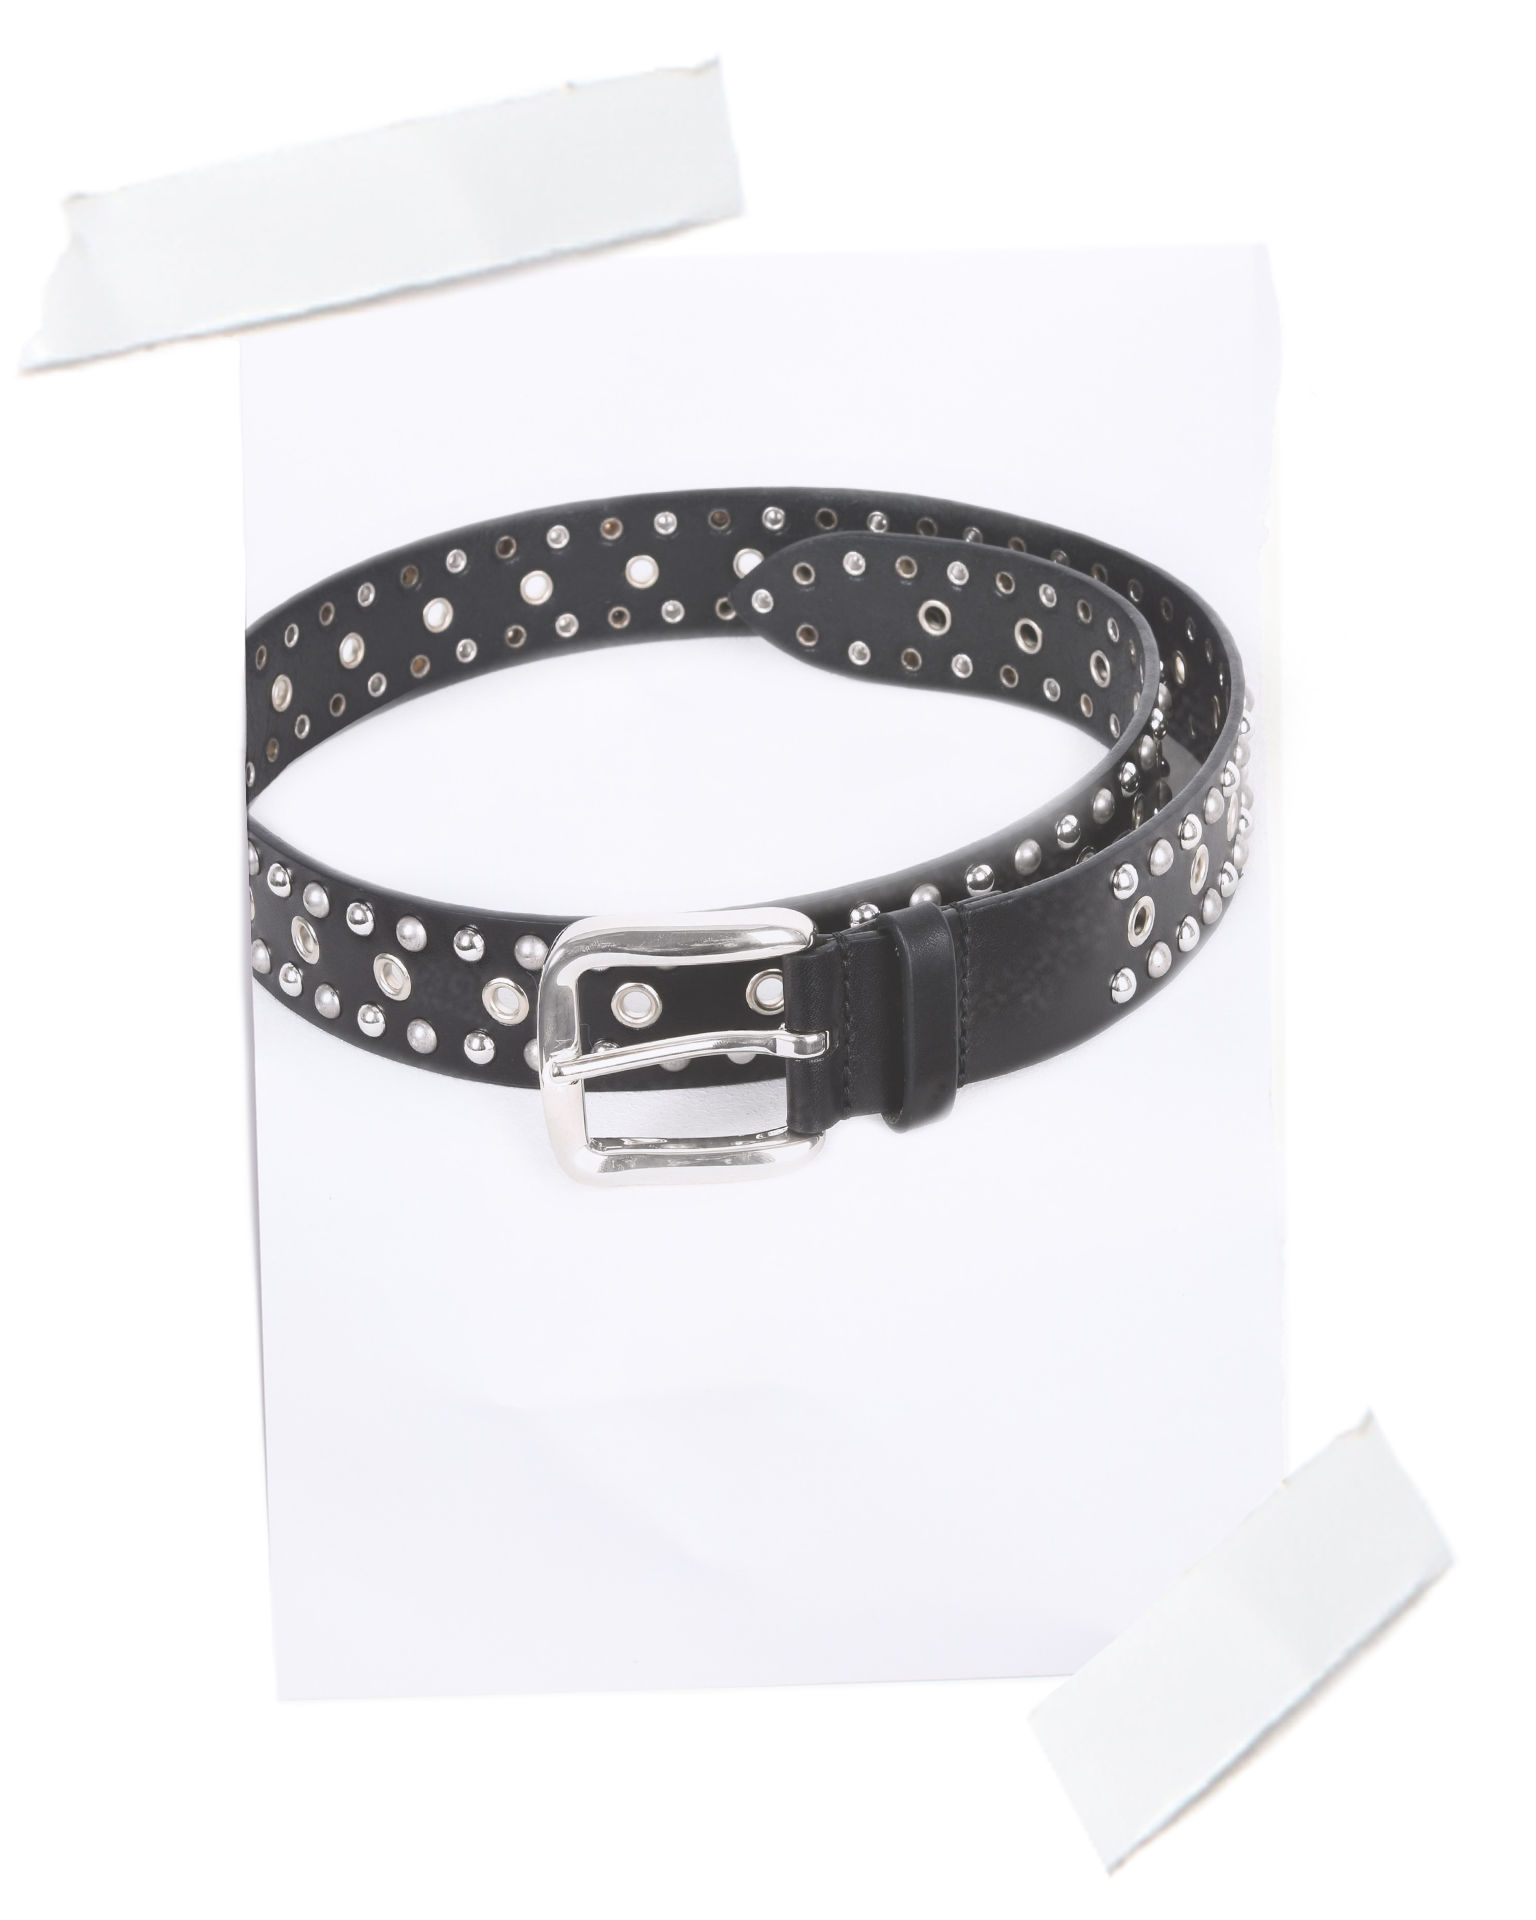 Rica Smooth leather belt with stud and eyelet detailing